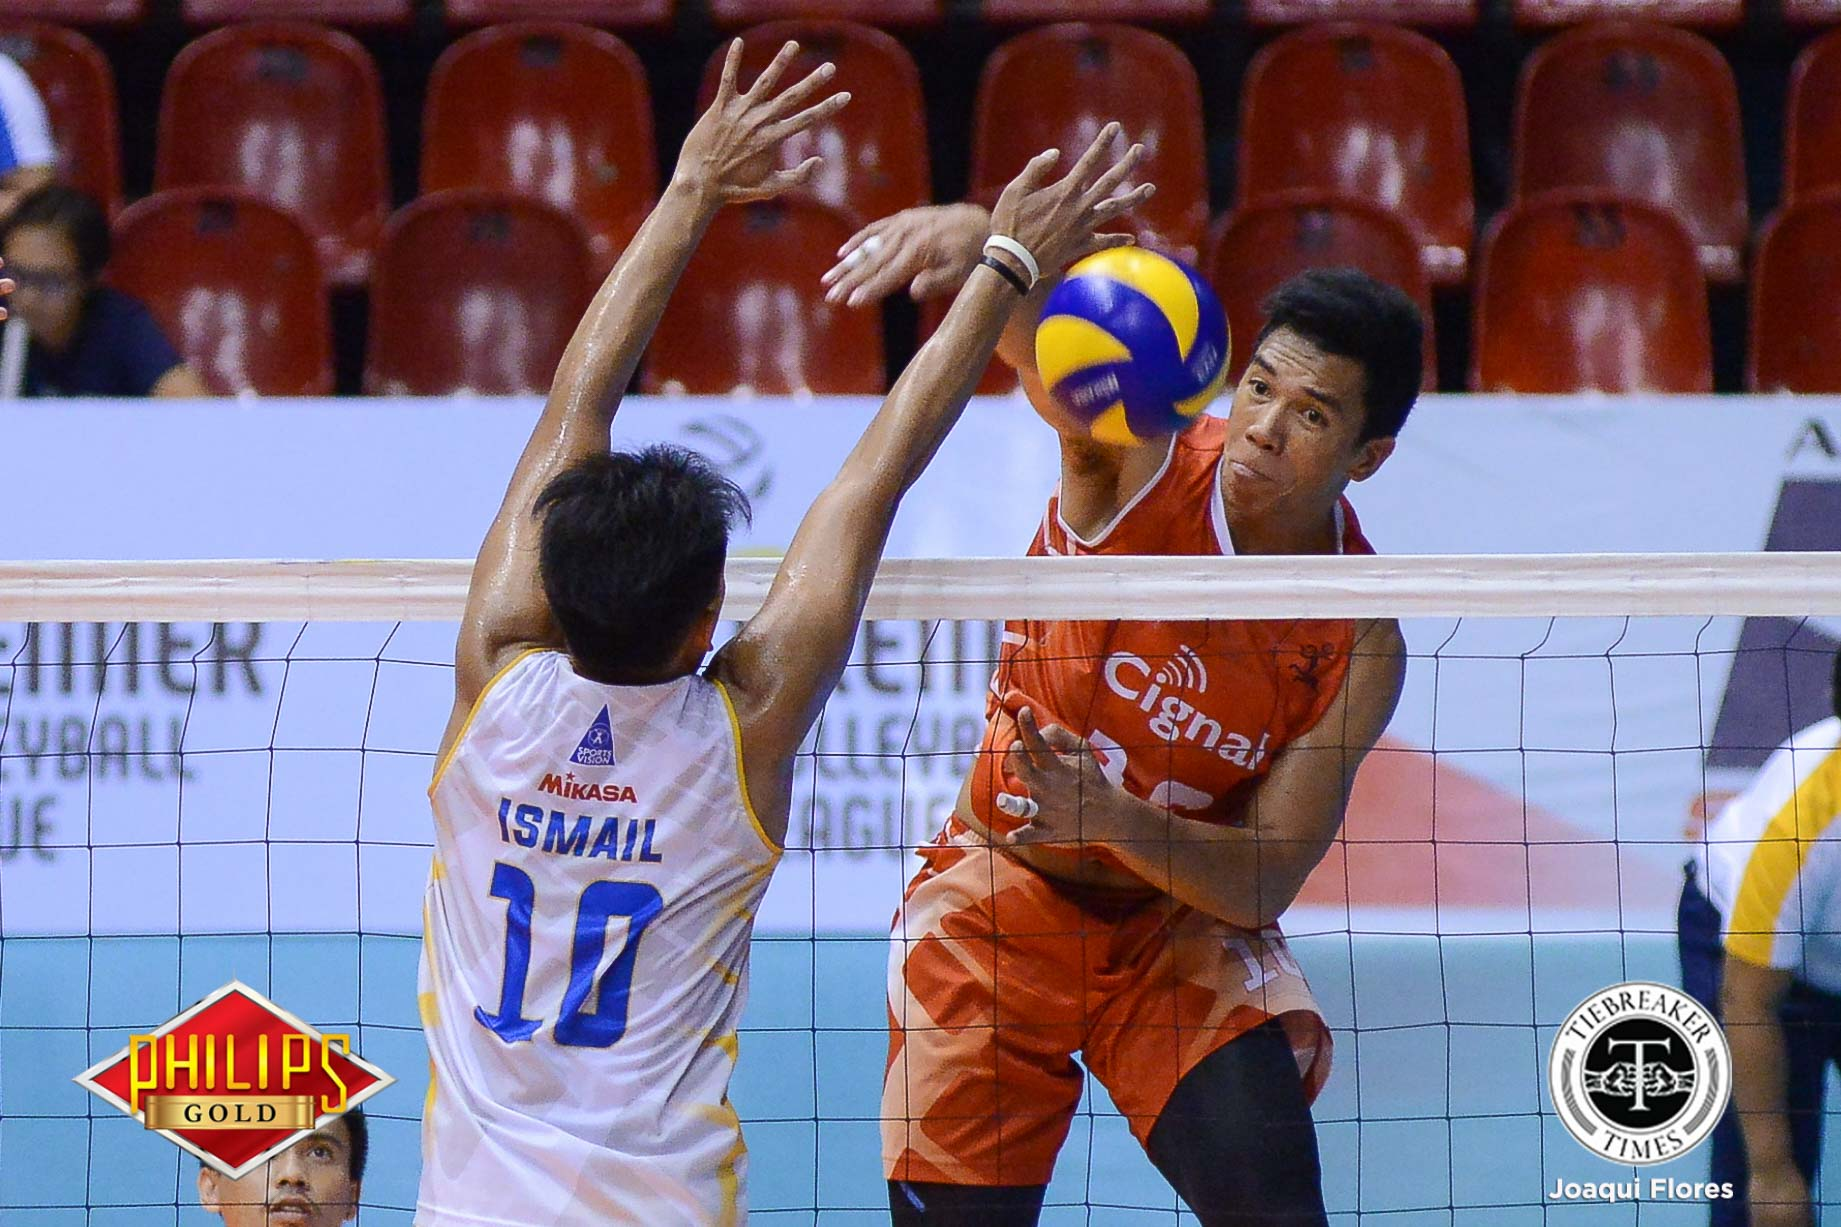 Philippine Sports News - Tiebreaker Times Loud and Proud: Alfafara provides added leadership to Cignal, Men's NVT News PVL Volleyball  Mark Alfafara Cignal HD Spikerse 2017 SEA Games - Volleyball 2017 PVL Season 2017 PVL Men's Open Conference